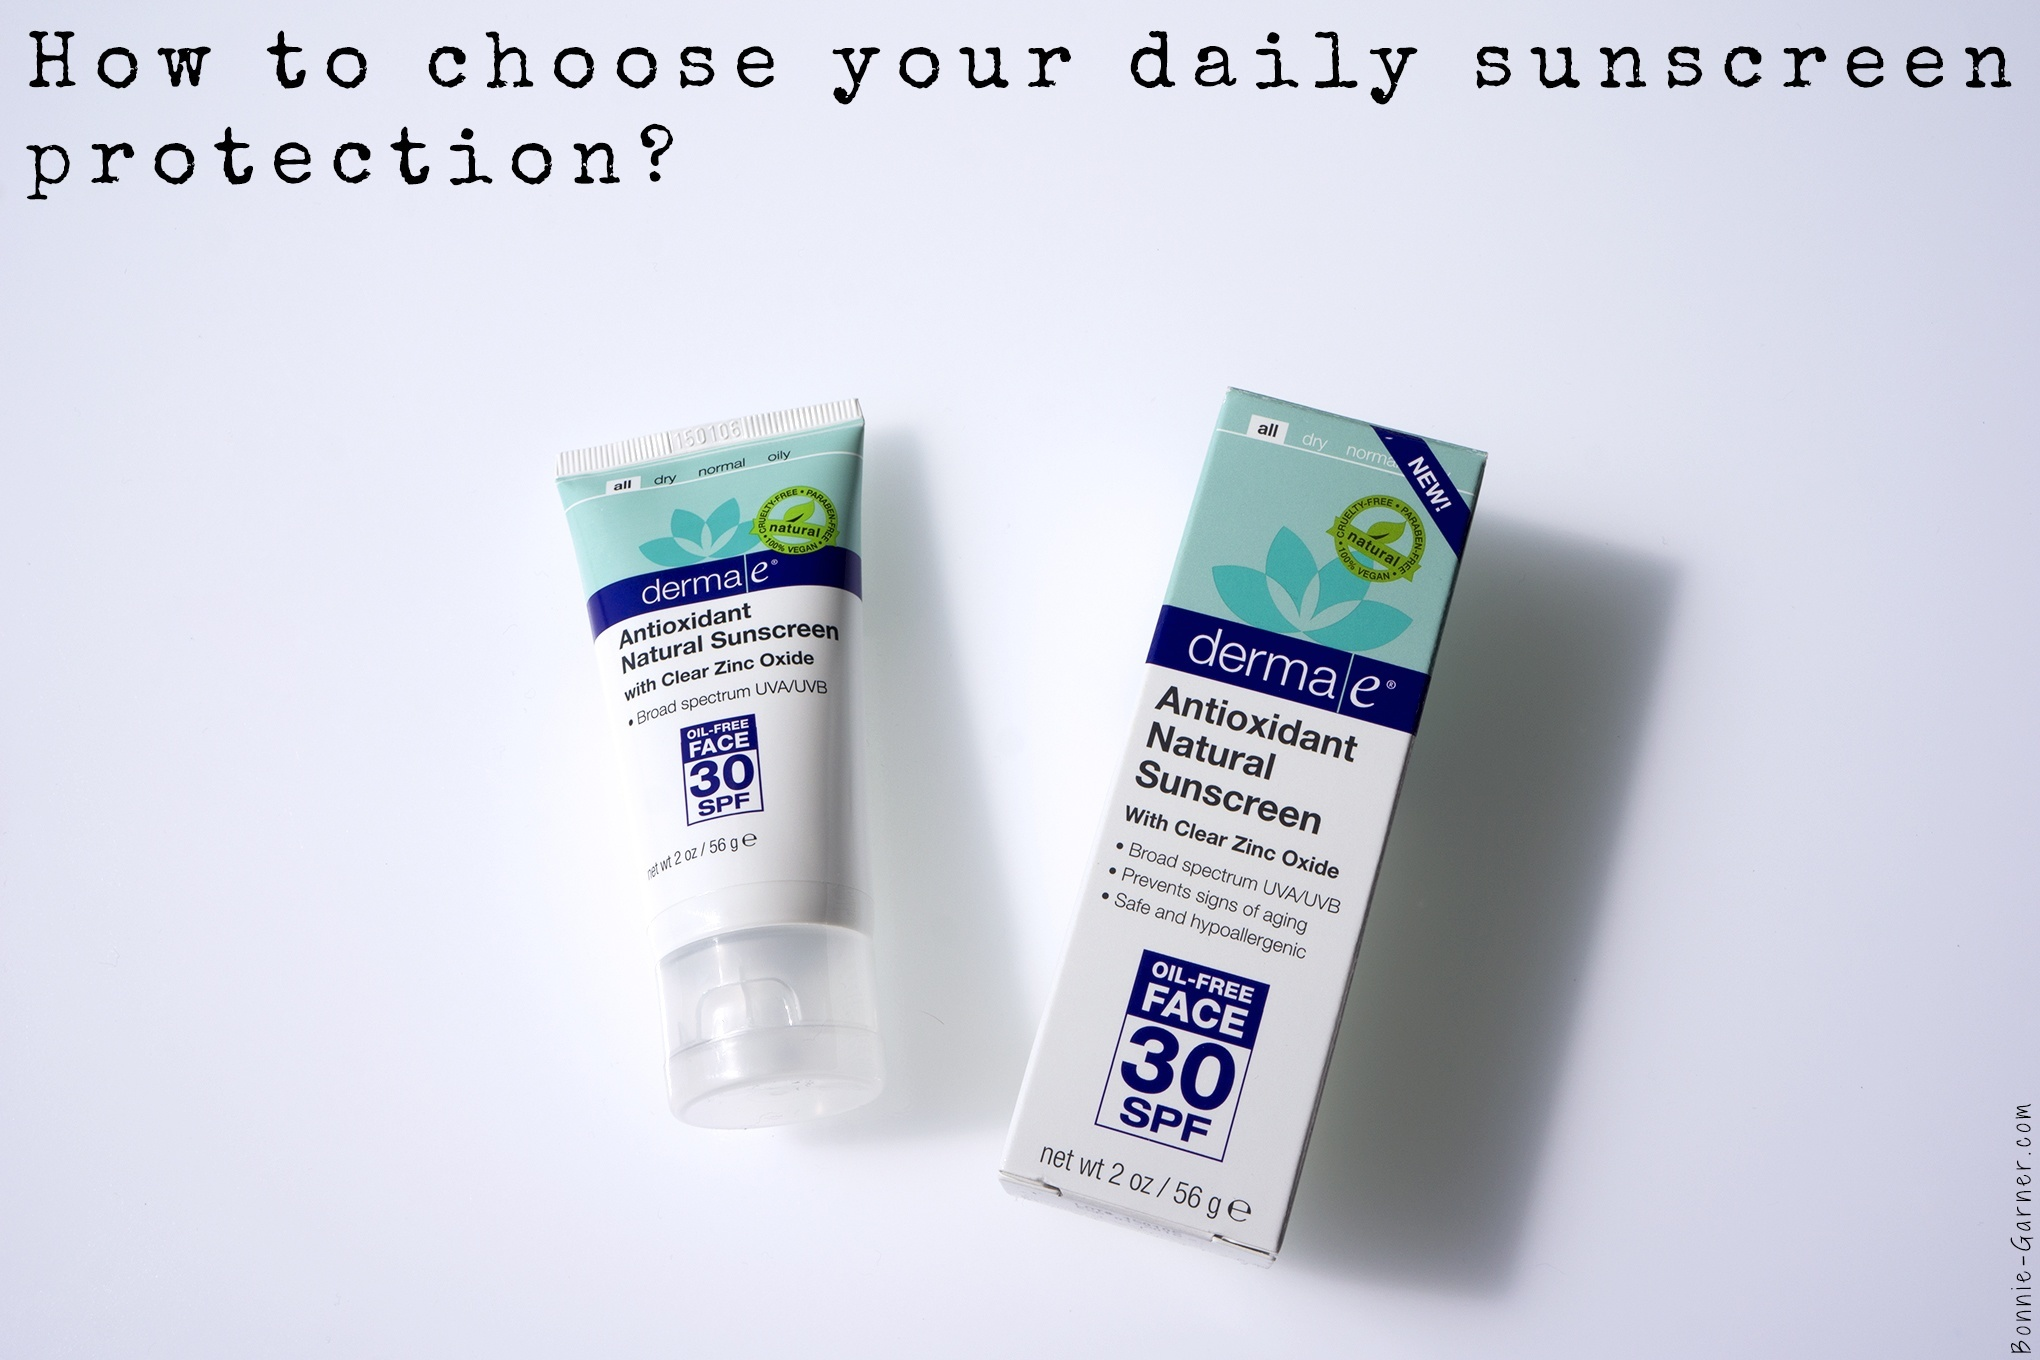 How to choose your daily sunscreen protection?